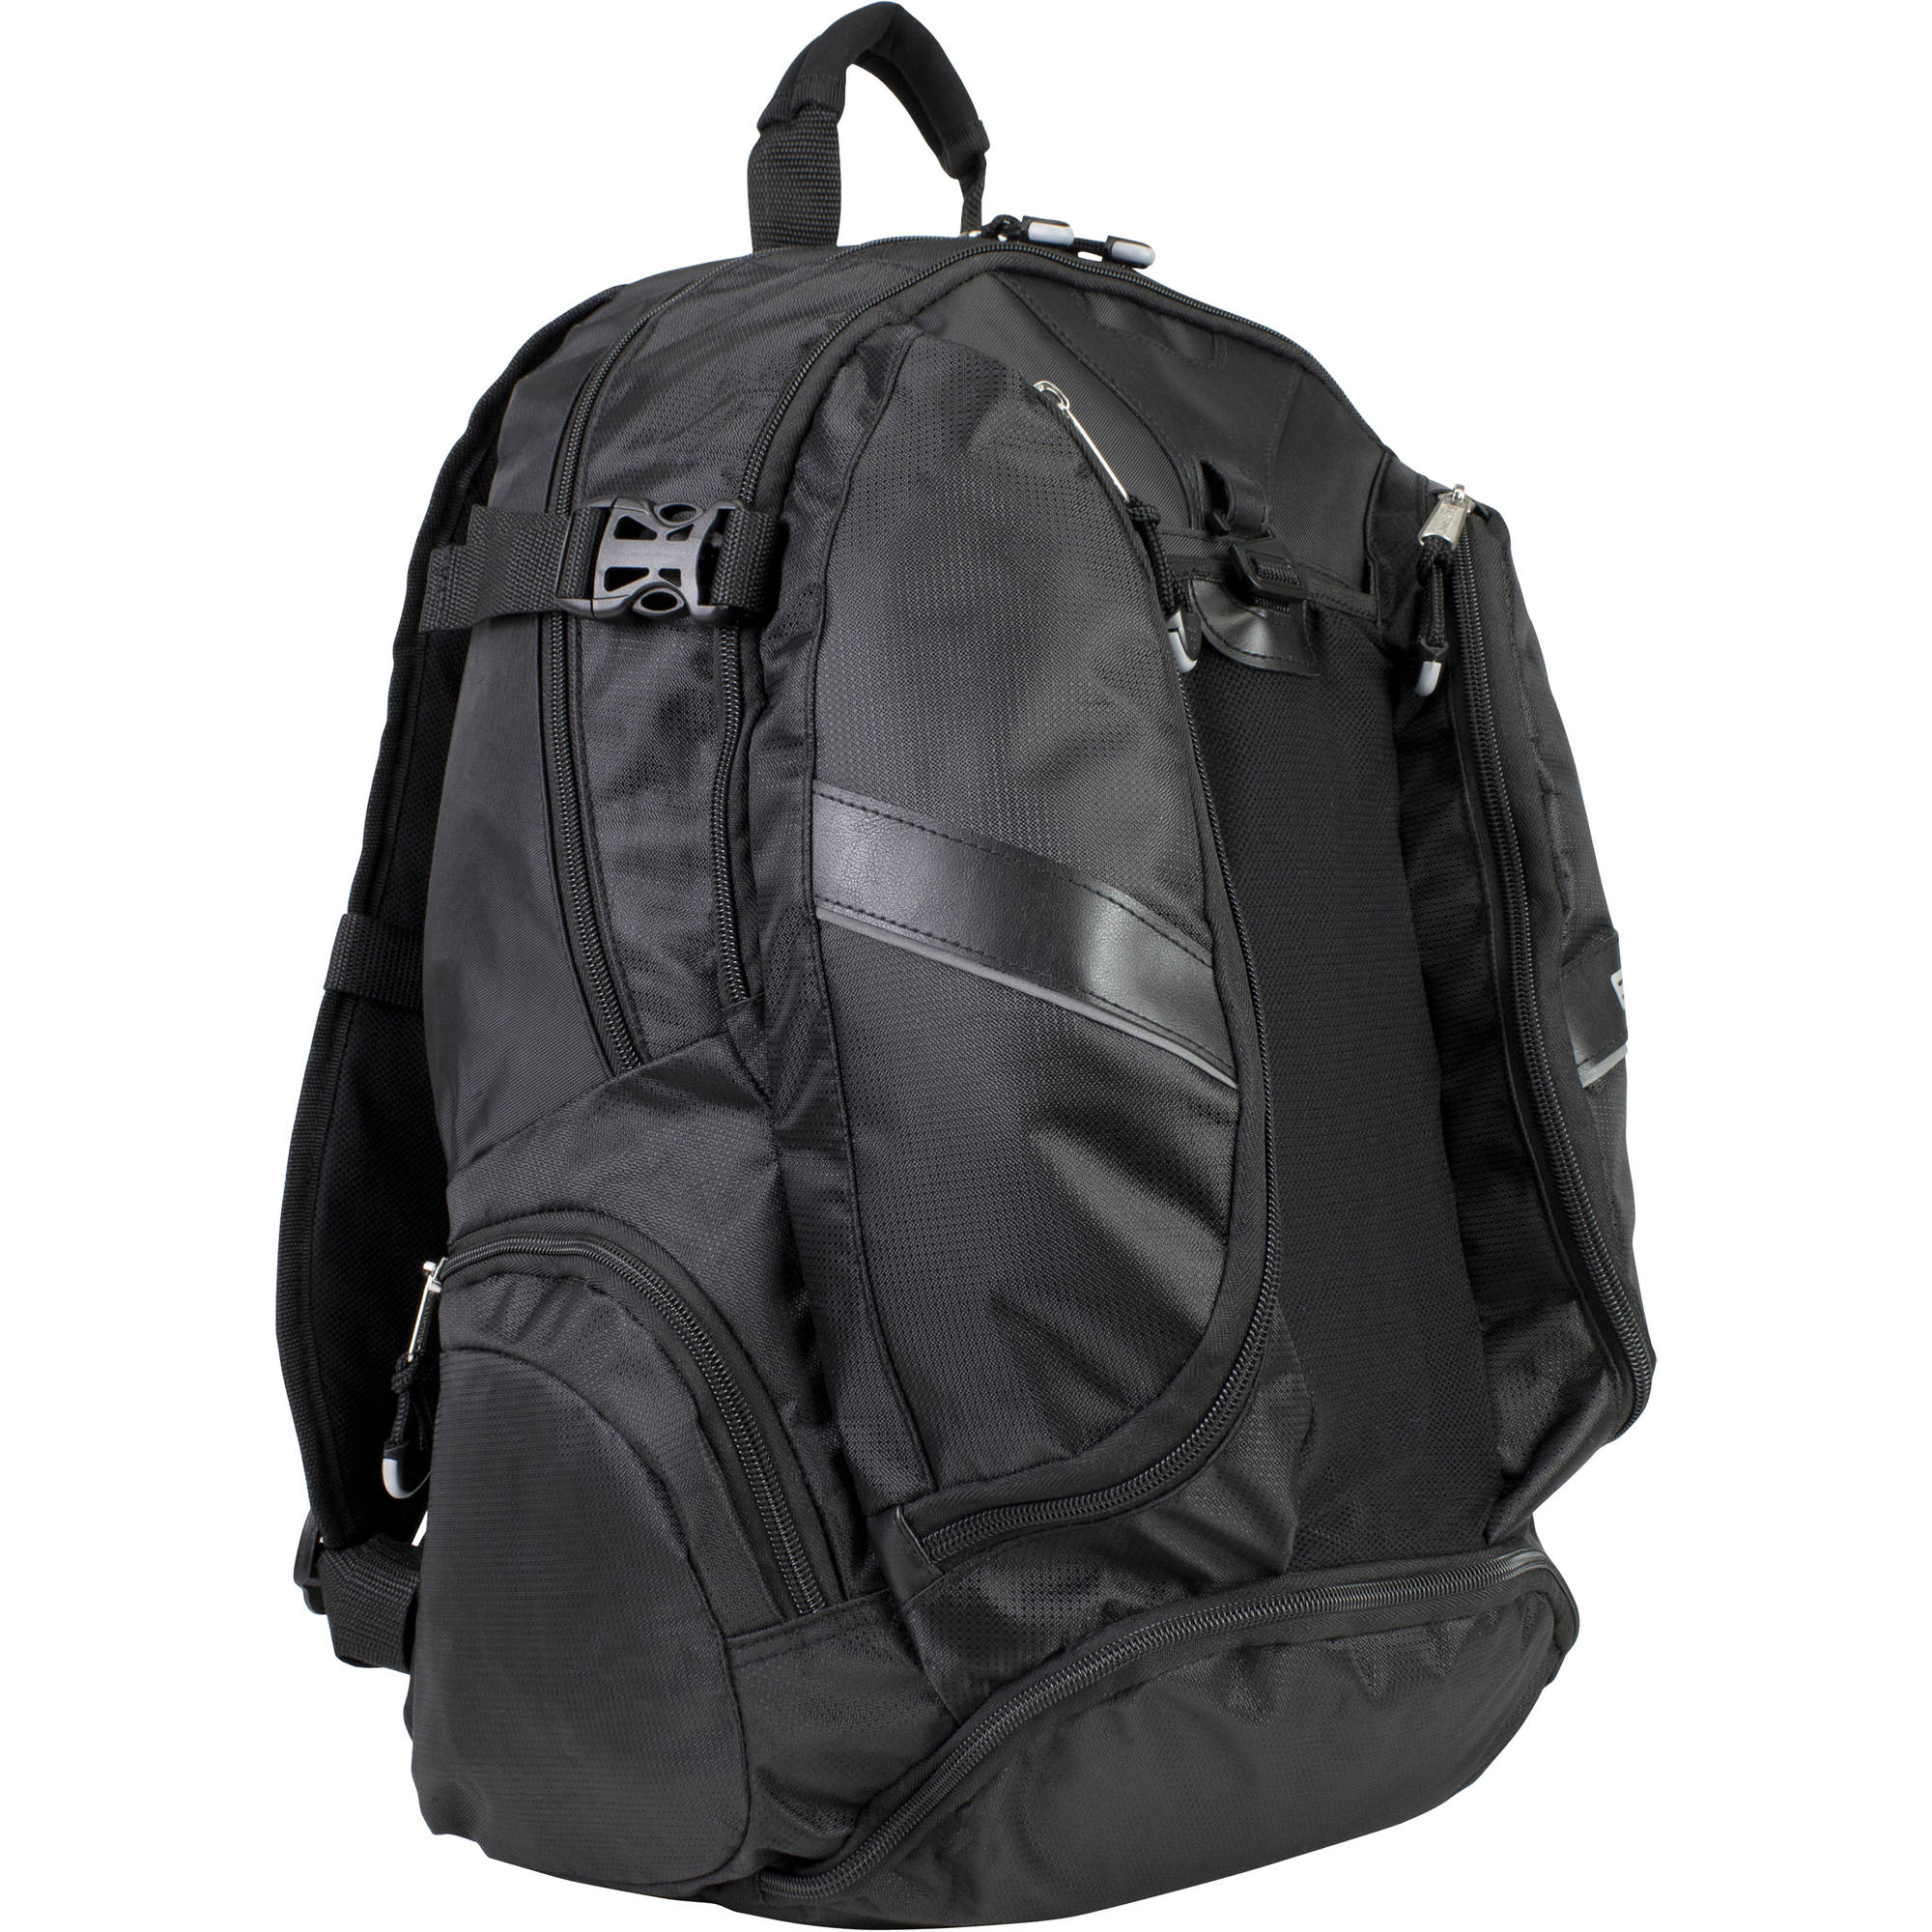 Eastsport Laptop Backpack